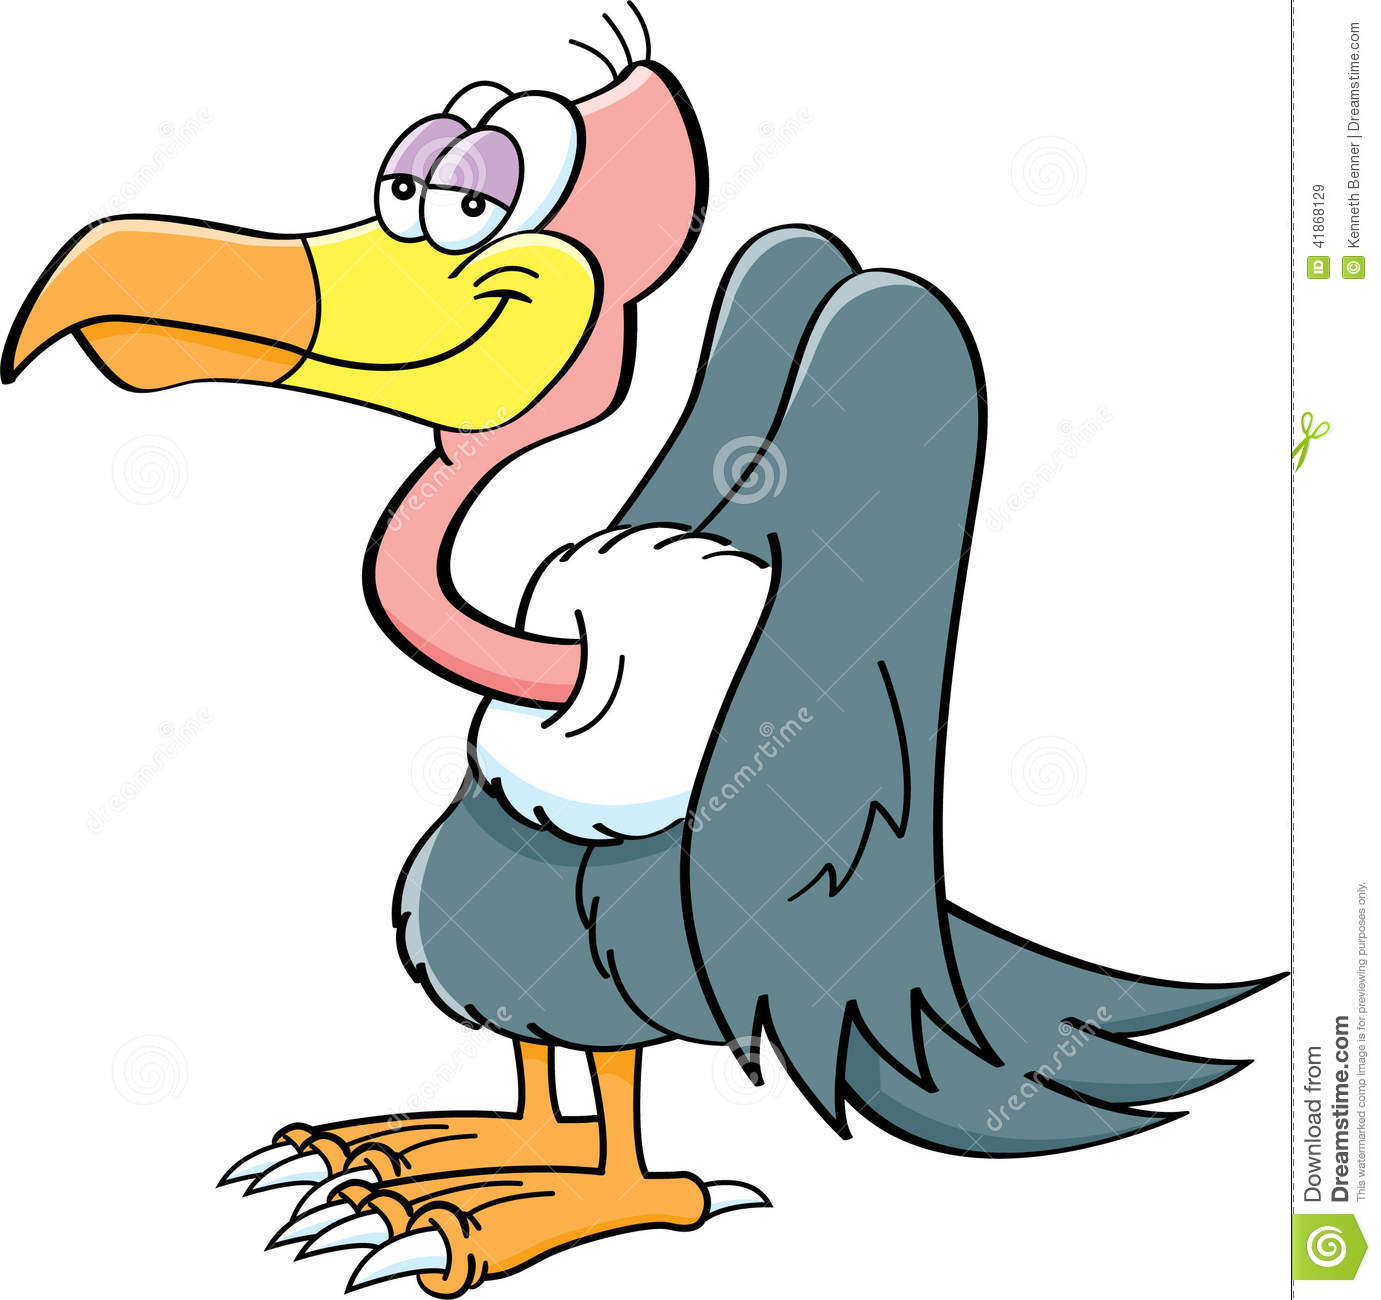 Cartoon Buzzard Stock Vector - Image: 41868129